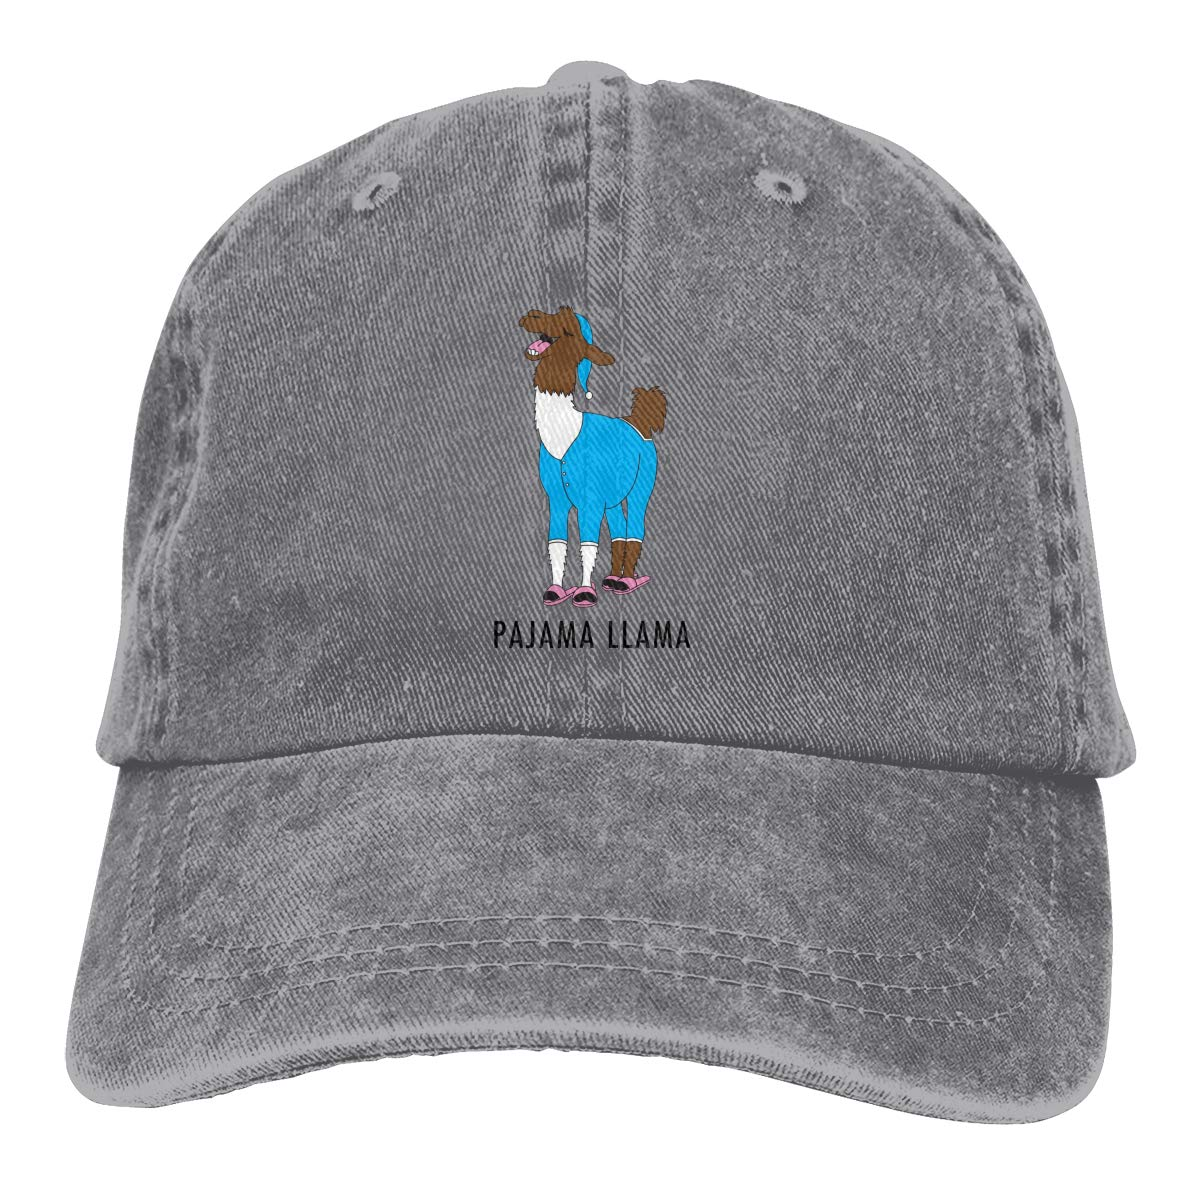 Pajama Llama Unisex Baseball Cap Cotton Denim Fashion Adjustable Sun Hat for Men Women Youth Deep Heather